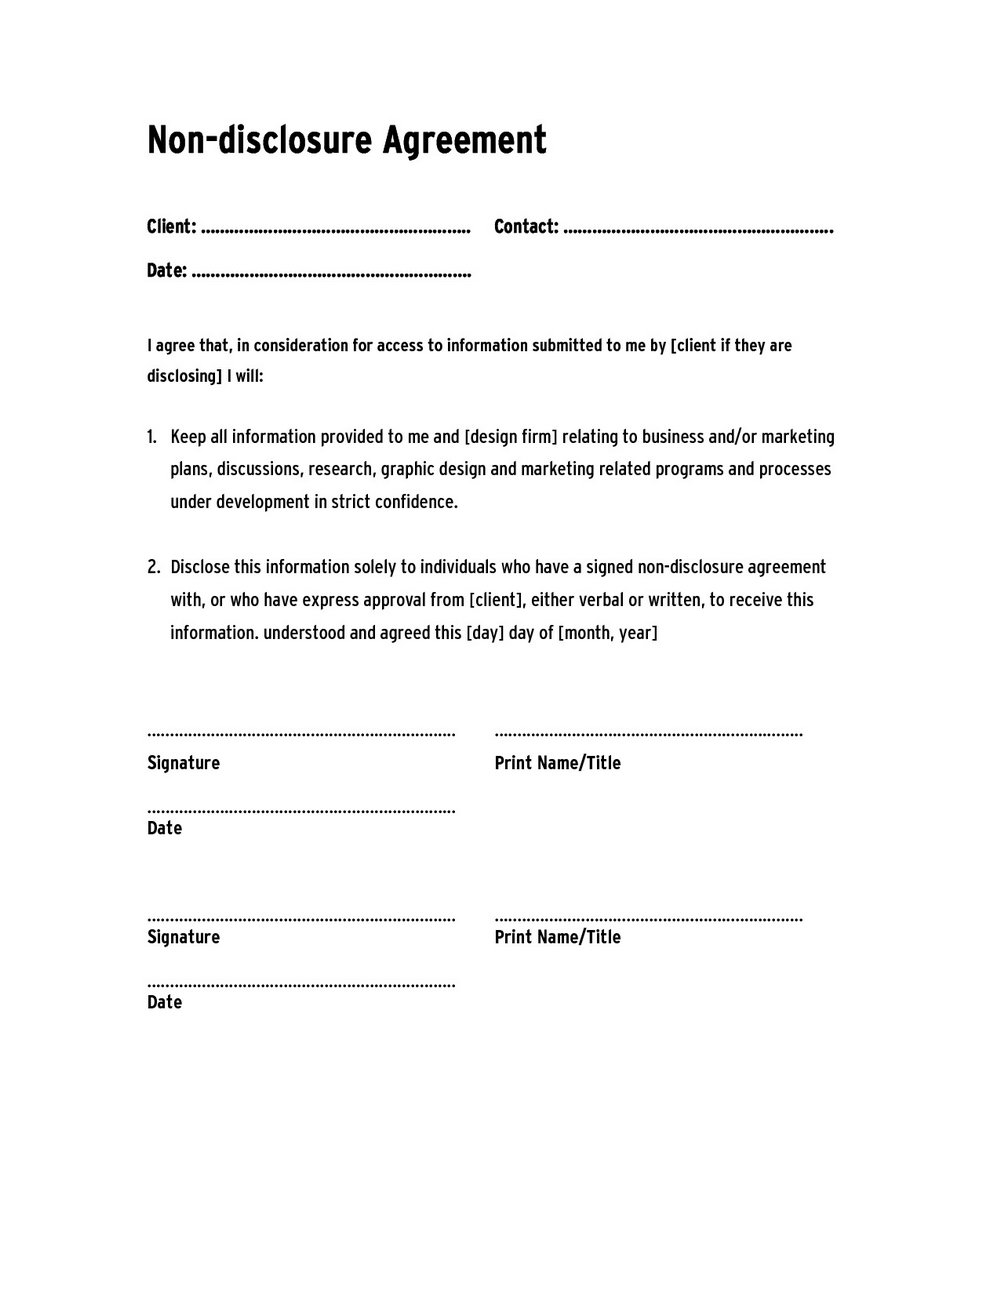 Employee Confidentiality Agreement Template Uk